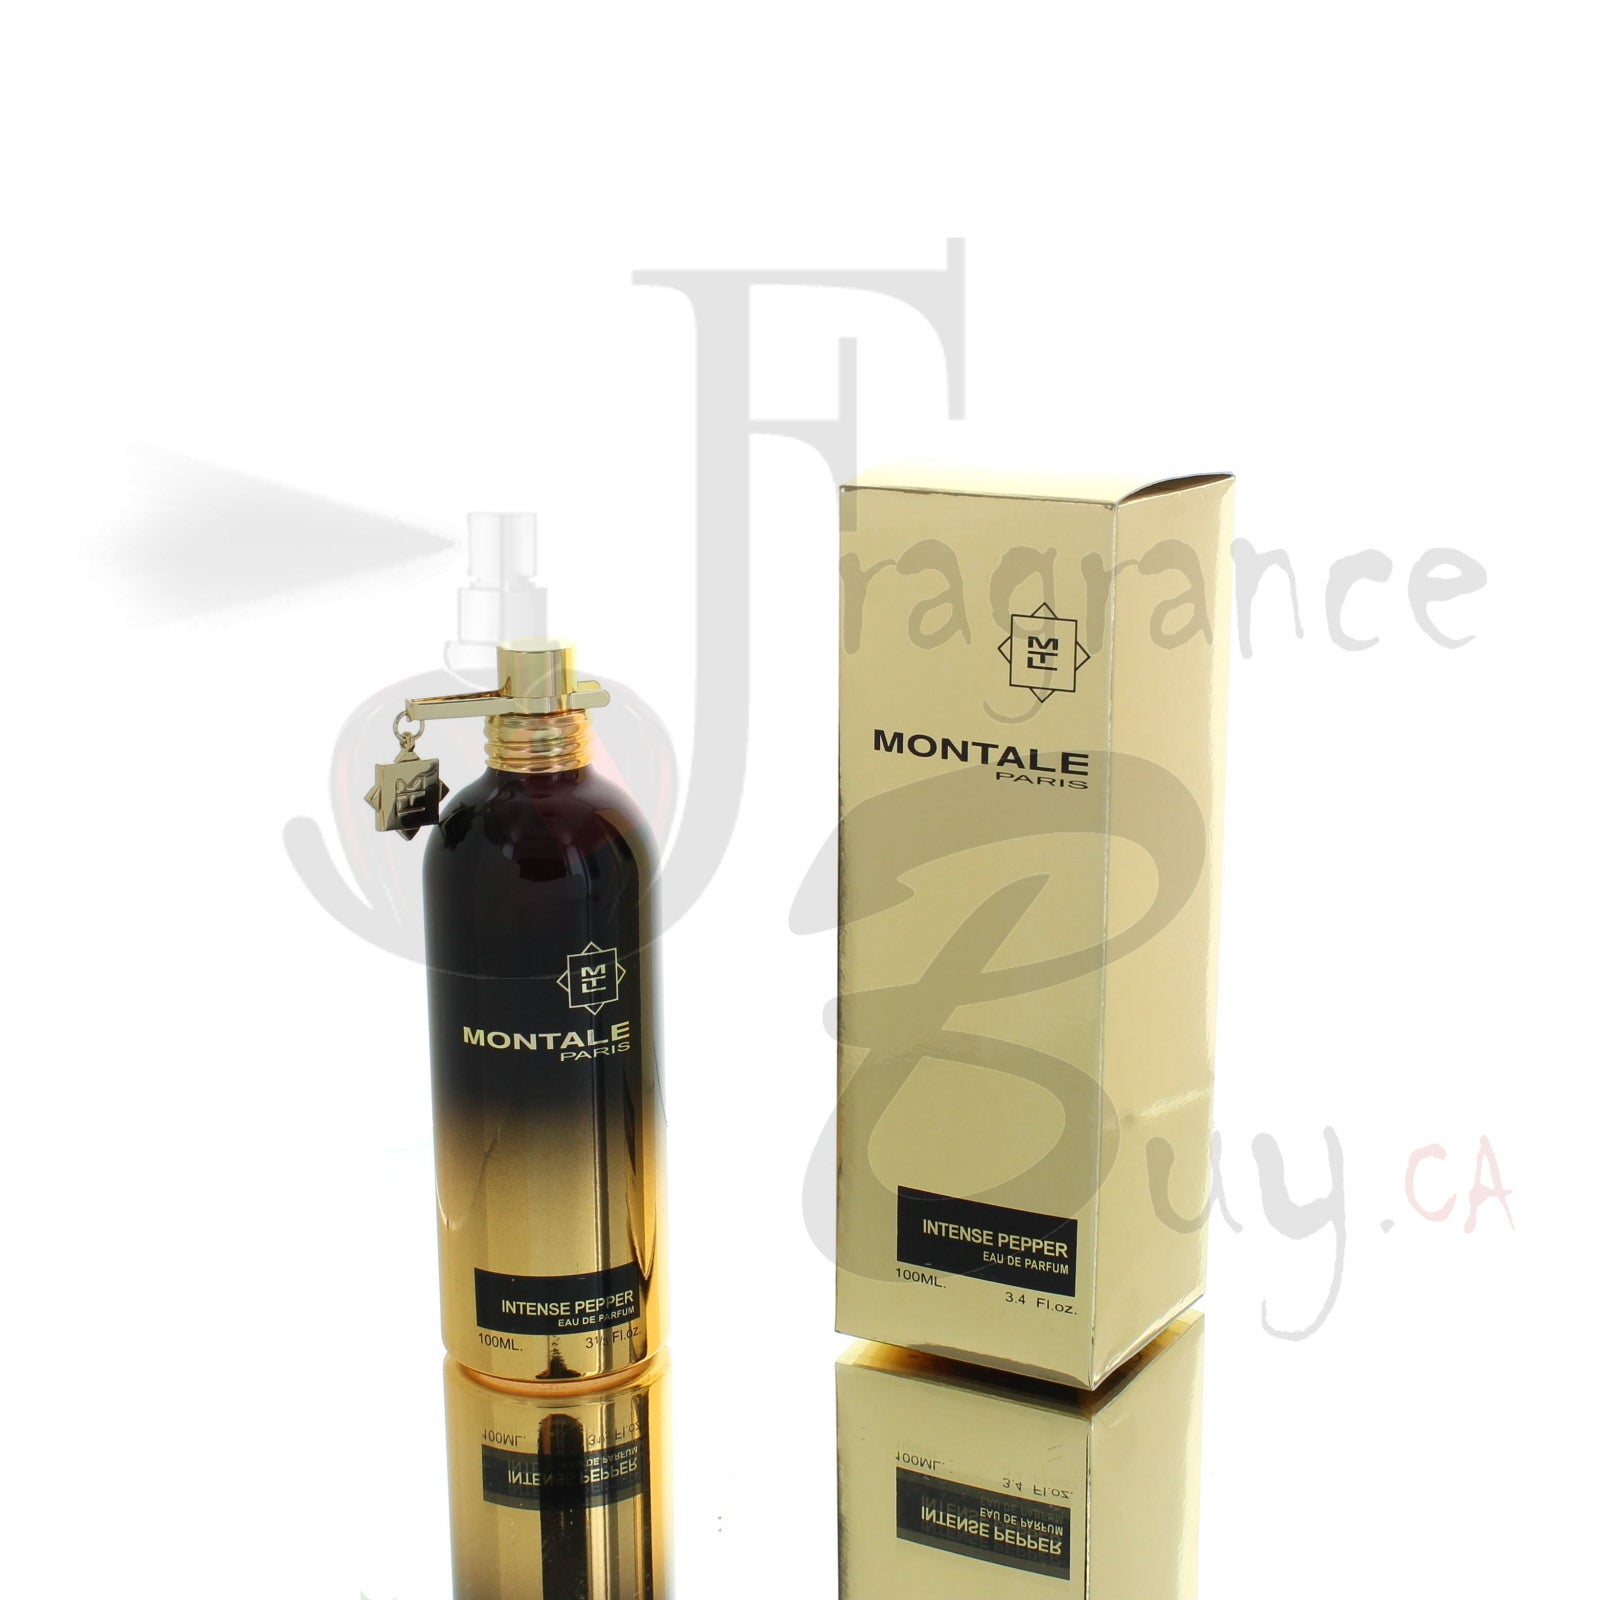 Montale Intense Pepper For Man/Woman